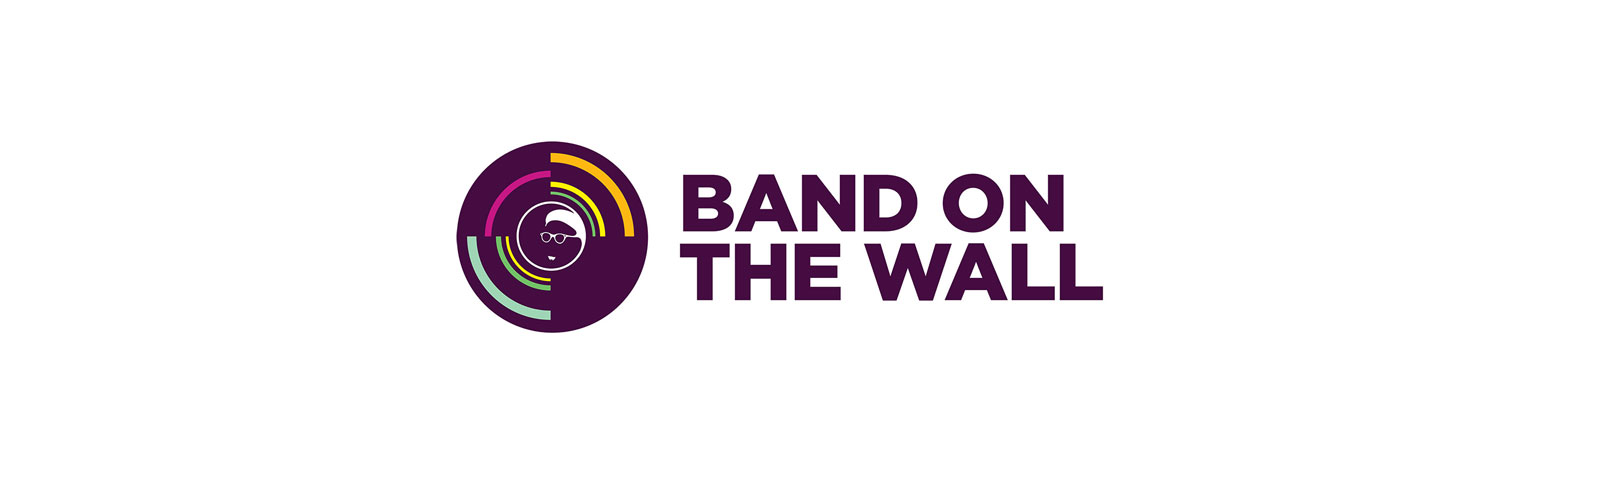 band-on-the-wall